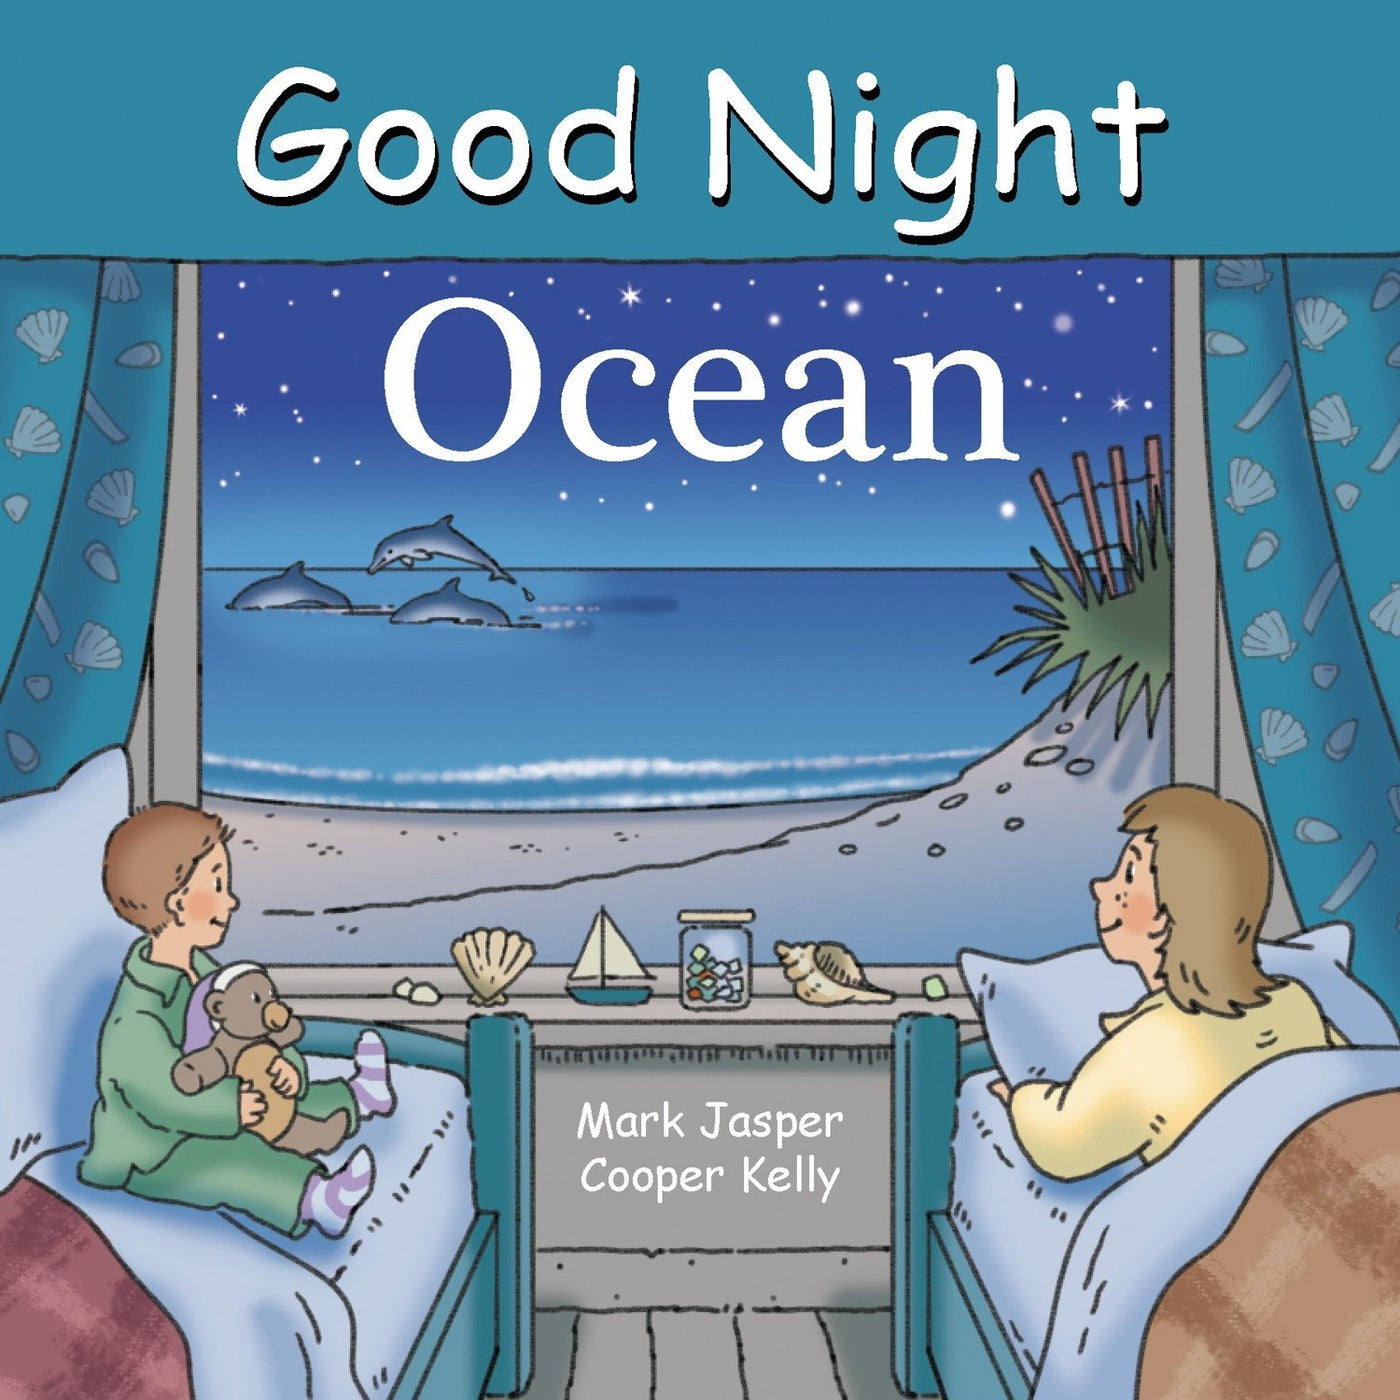 Good Night Board Book